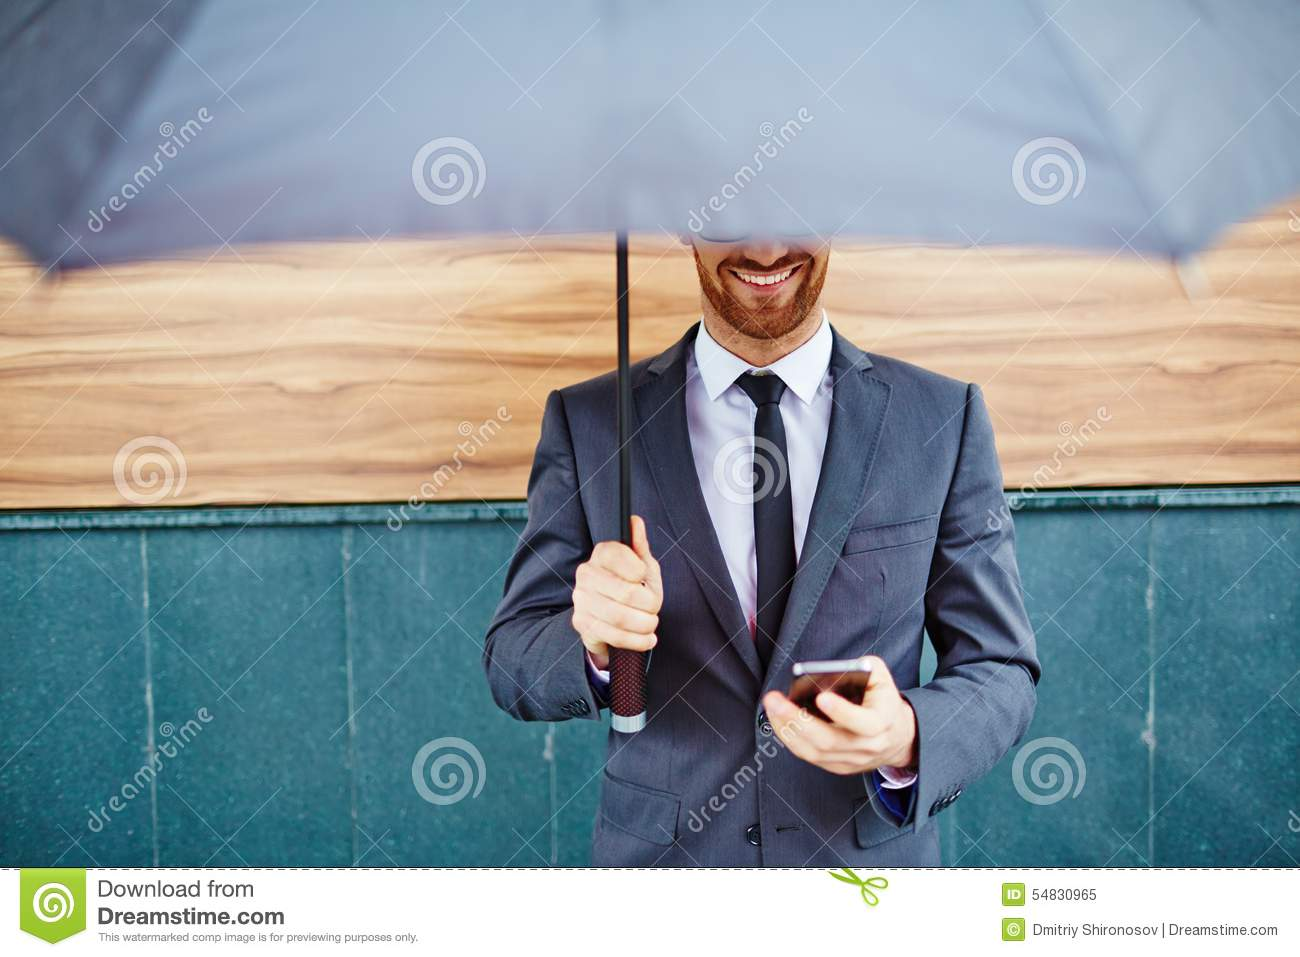 entrepreneur-under-umbrella-smiling-cellphone-standing-54830965